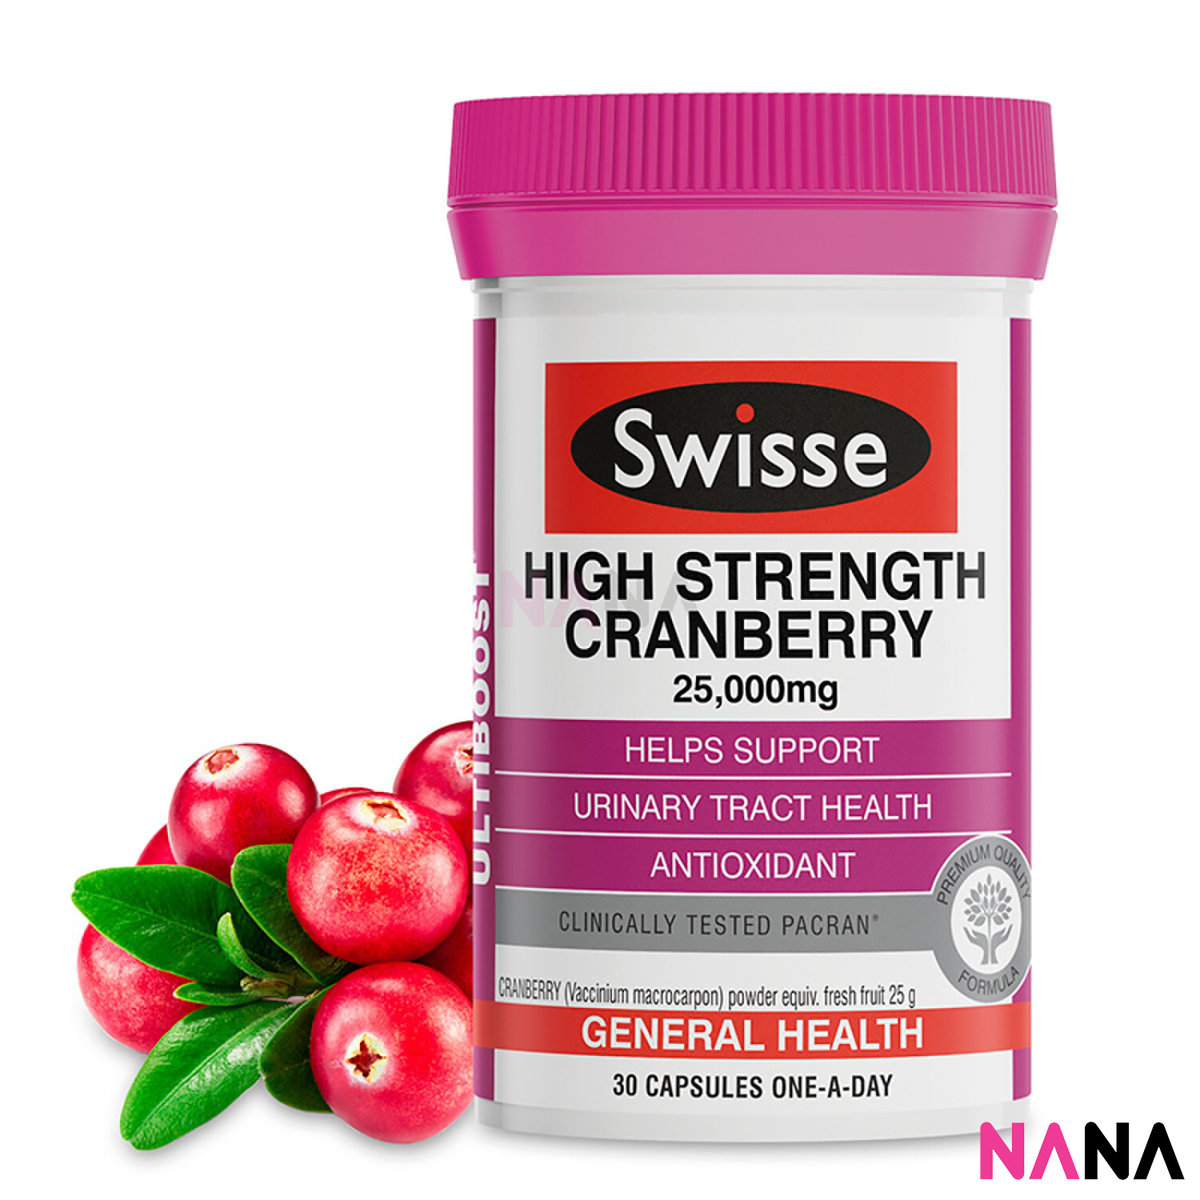 Ultiboost High Strength Cranberry 25,000mg 30 Capsules (EXP:03 2021)